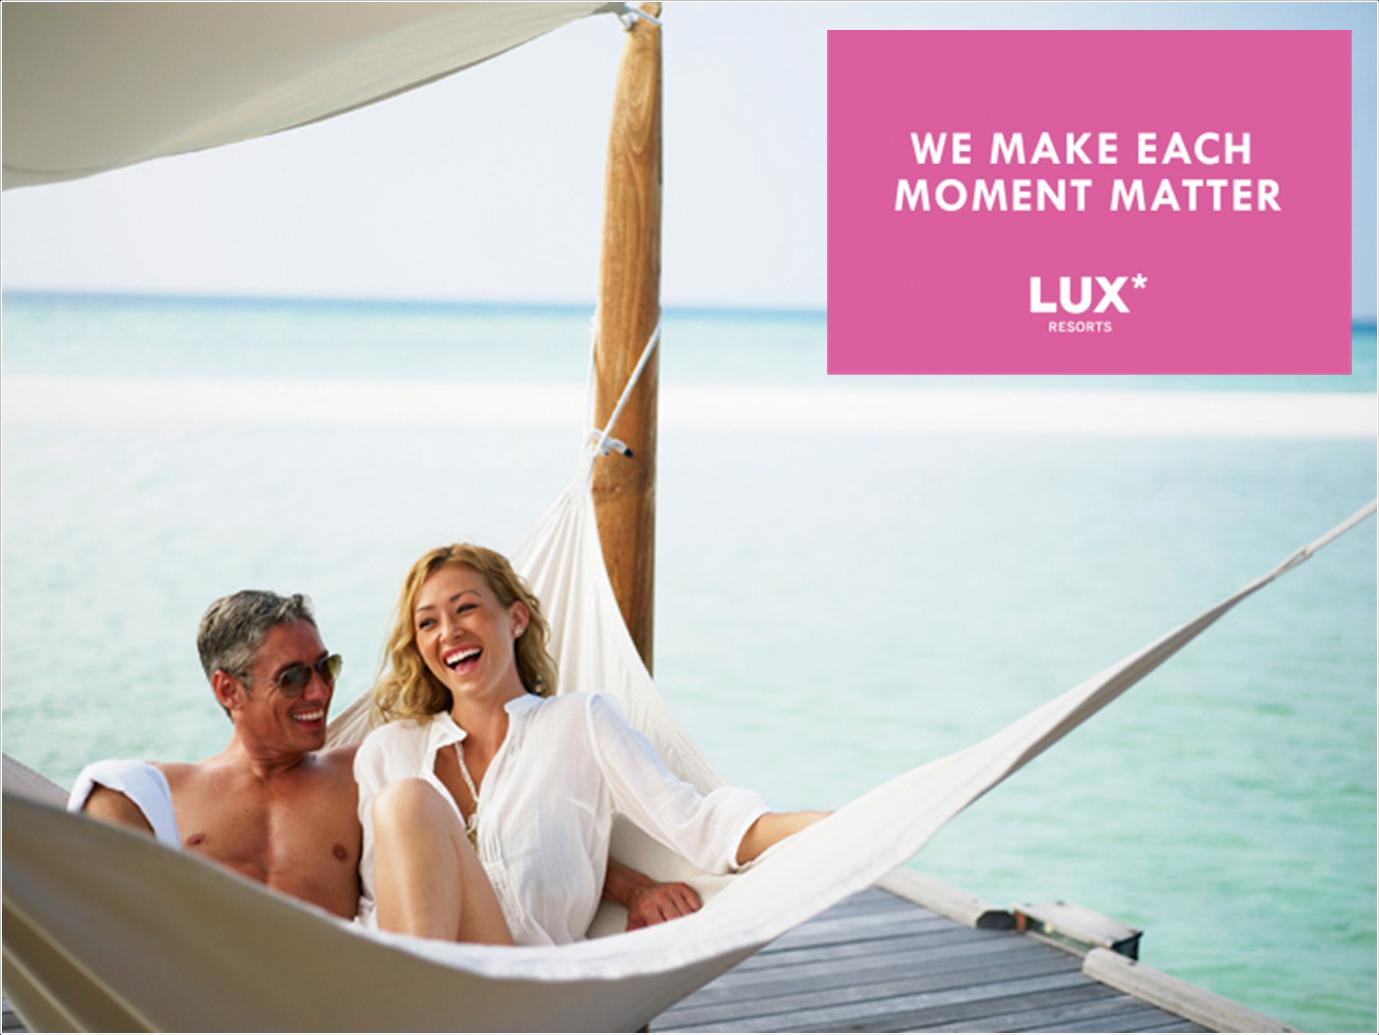 LUX Each Moment Matters